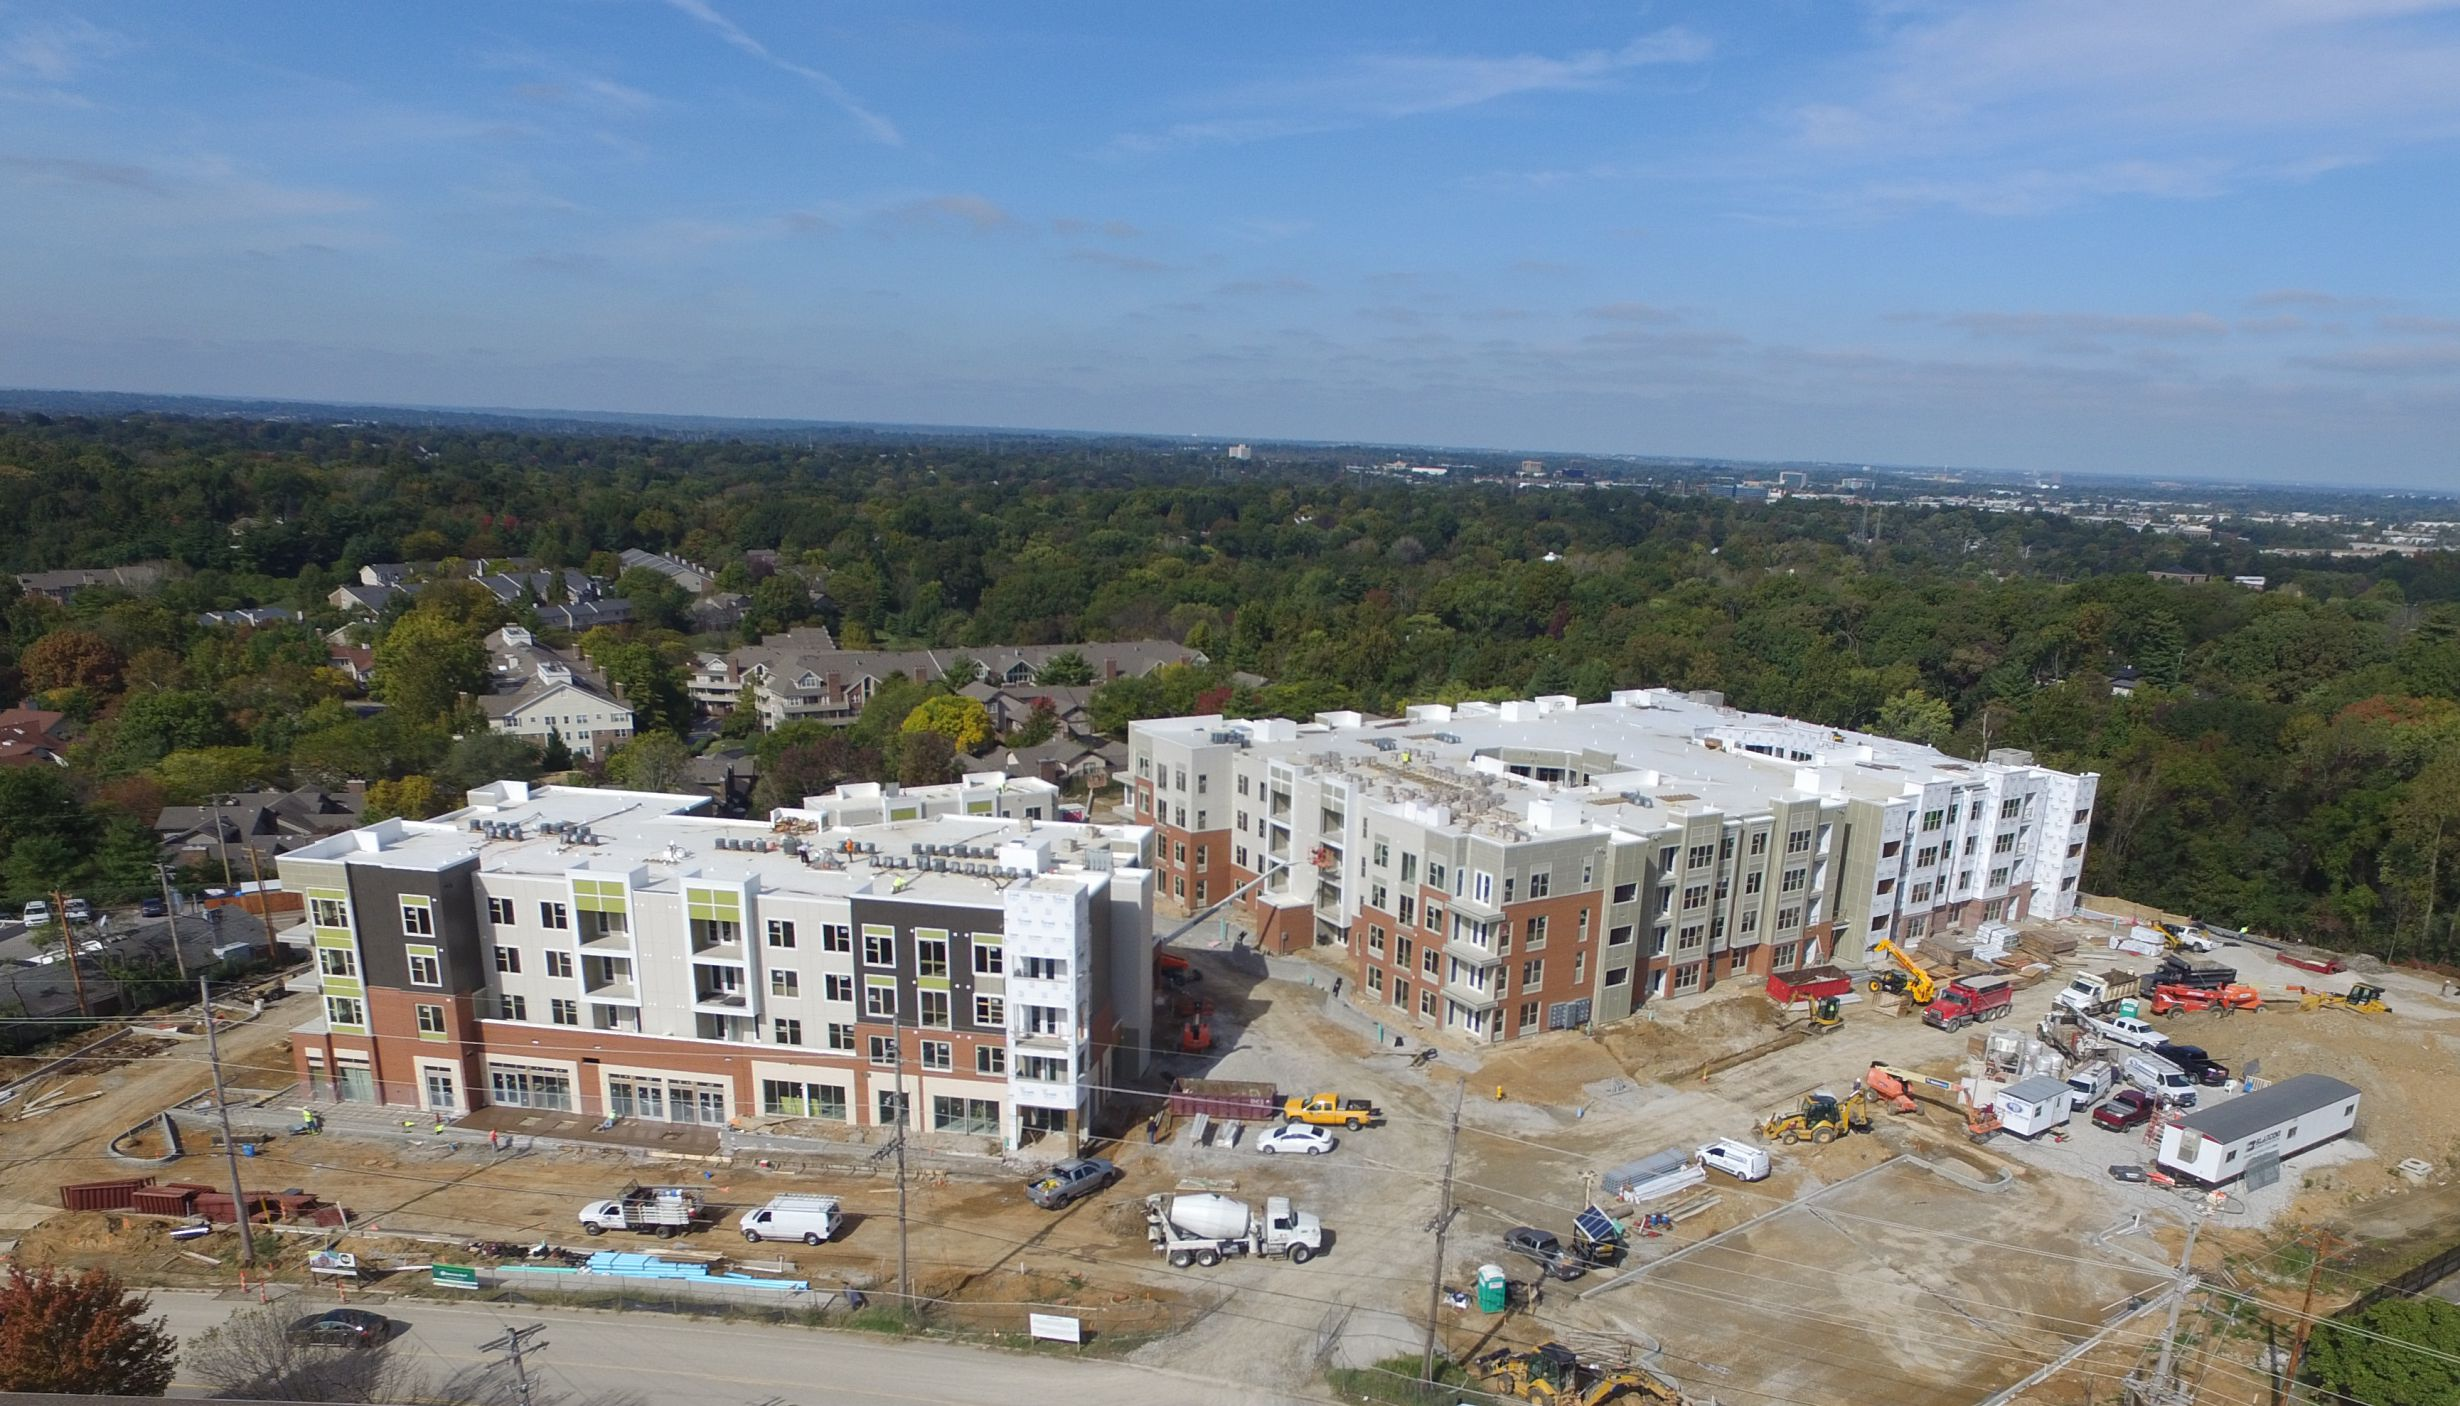 Construction in Progress at the Vue at Creve Coeur Apartments in Creve Coeur, MO